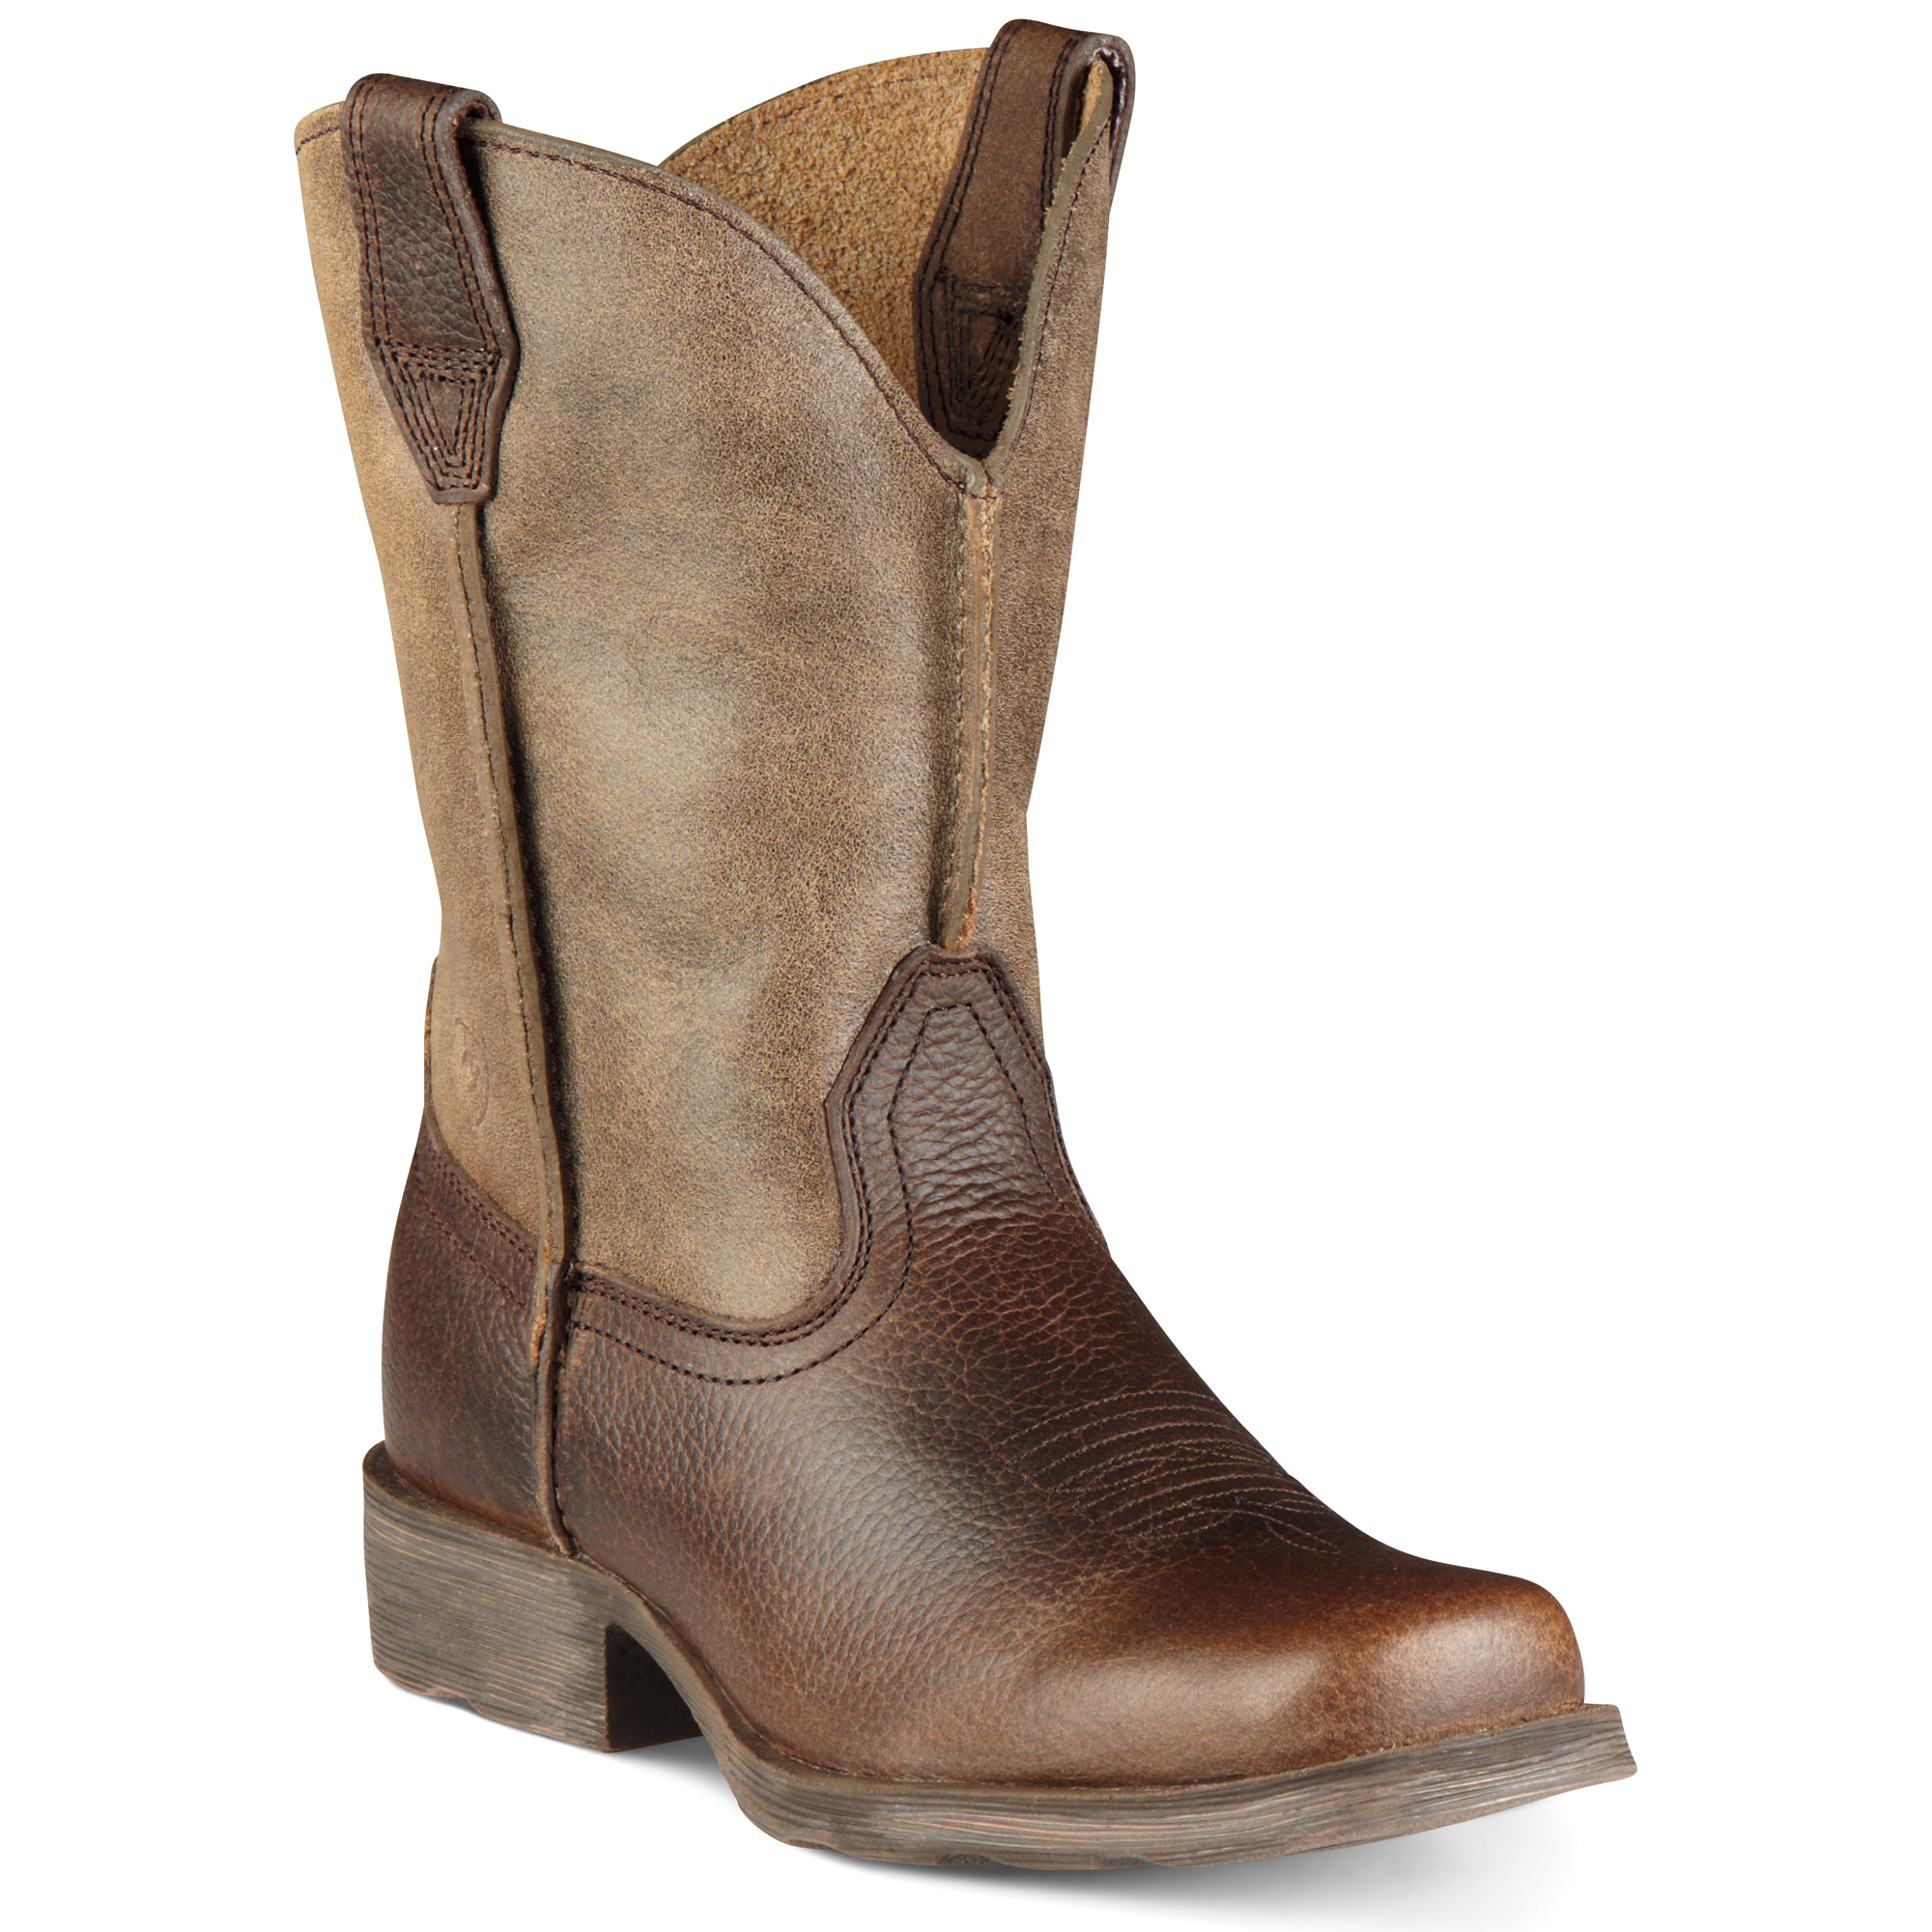 Kids Ariat Boots upEXyTUg